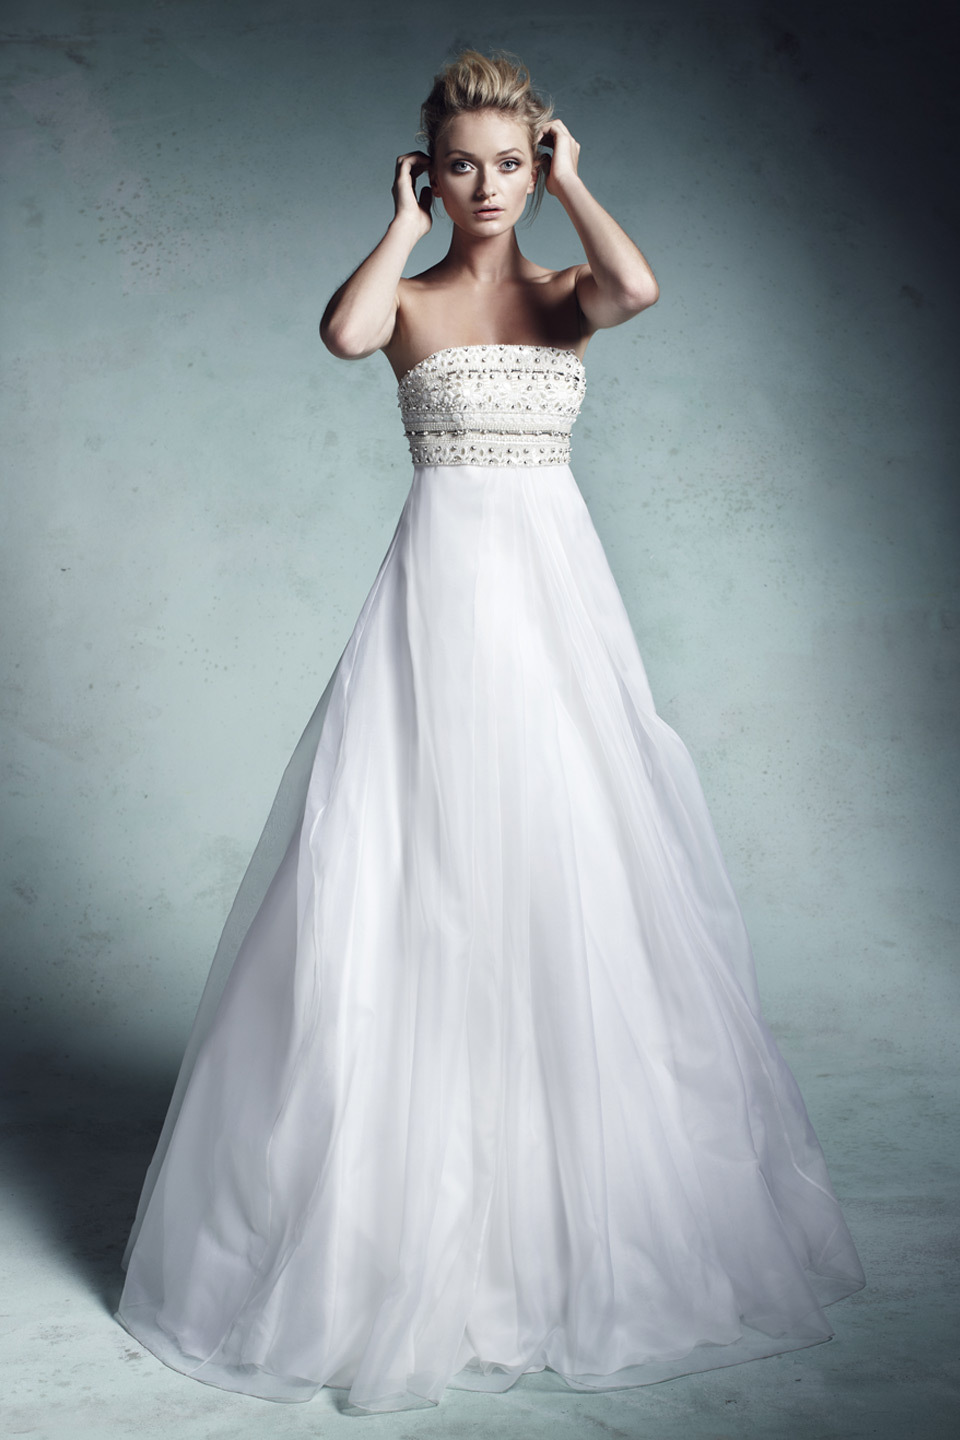 Wedding-dress-by-collette-dinnigan-2013-bridal-gowns-3.full